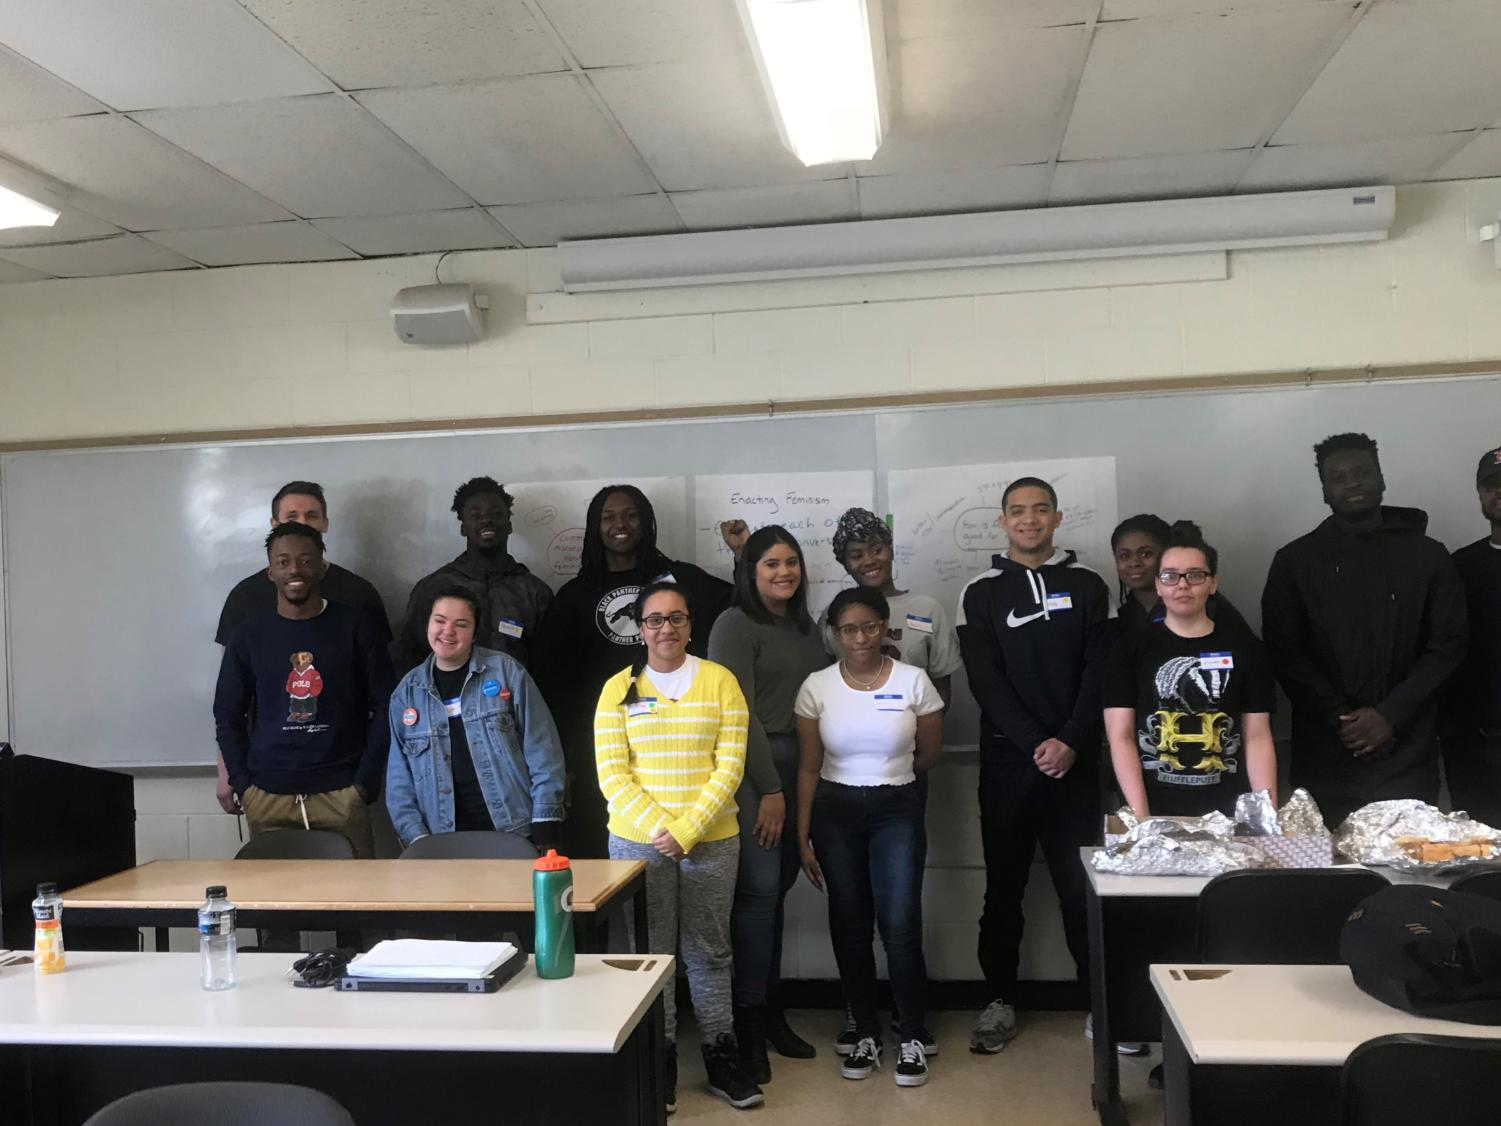 Members of Pace P.O.W.E.R. the Urban Male Initiative, and Pride at Pace at a student-led discussion on feminism on Wednesday afternoon